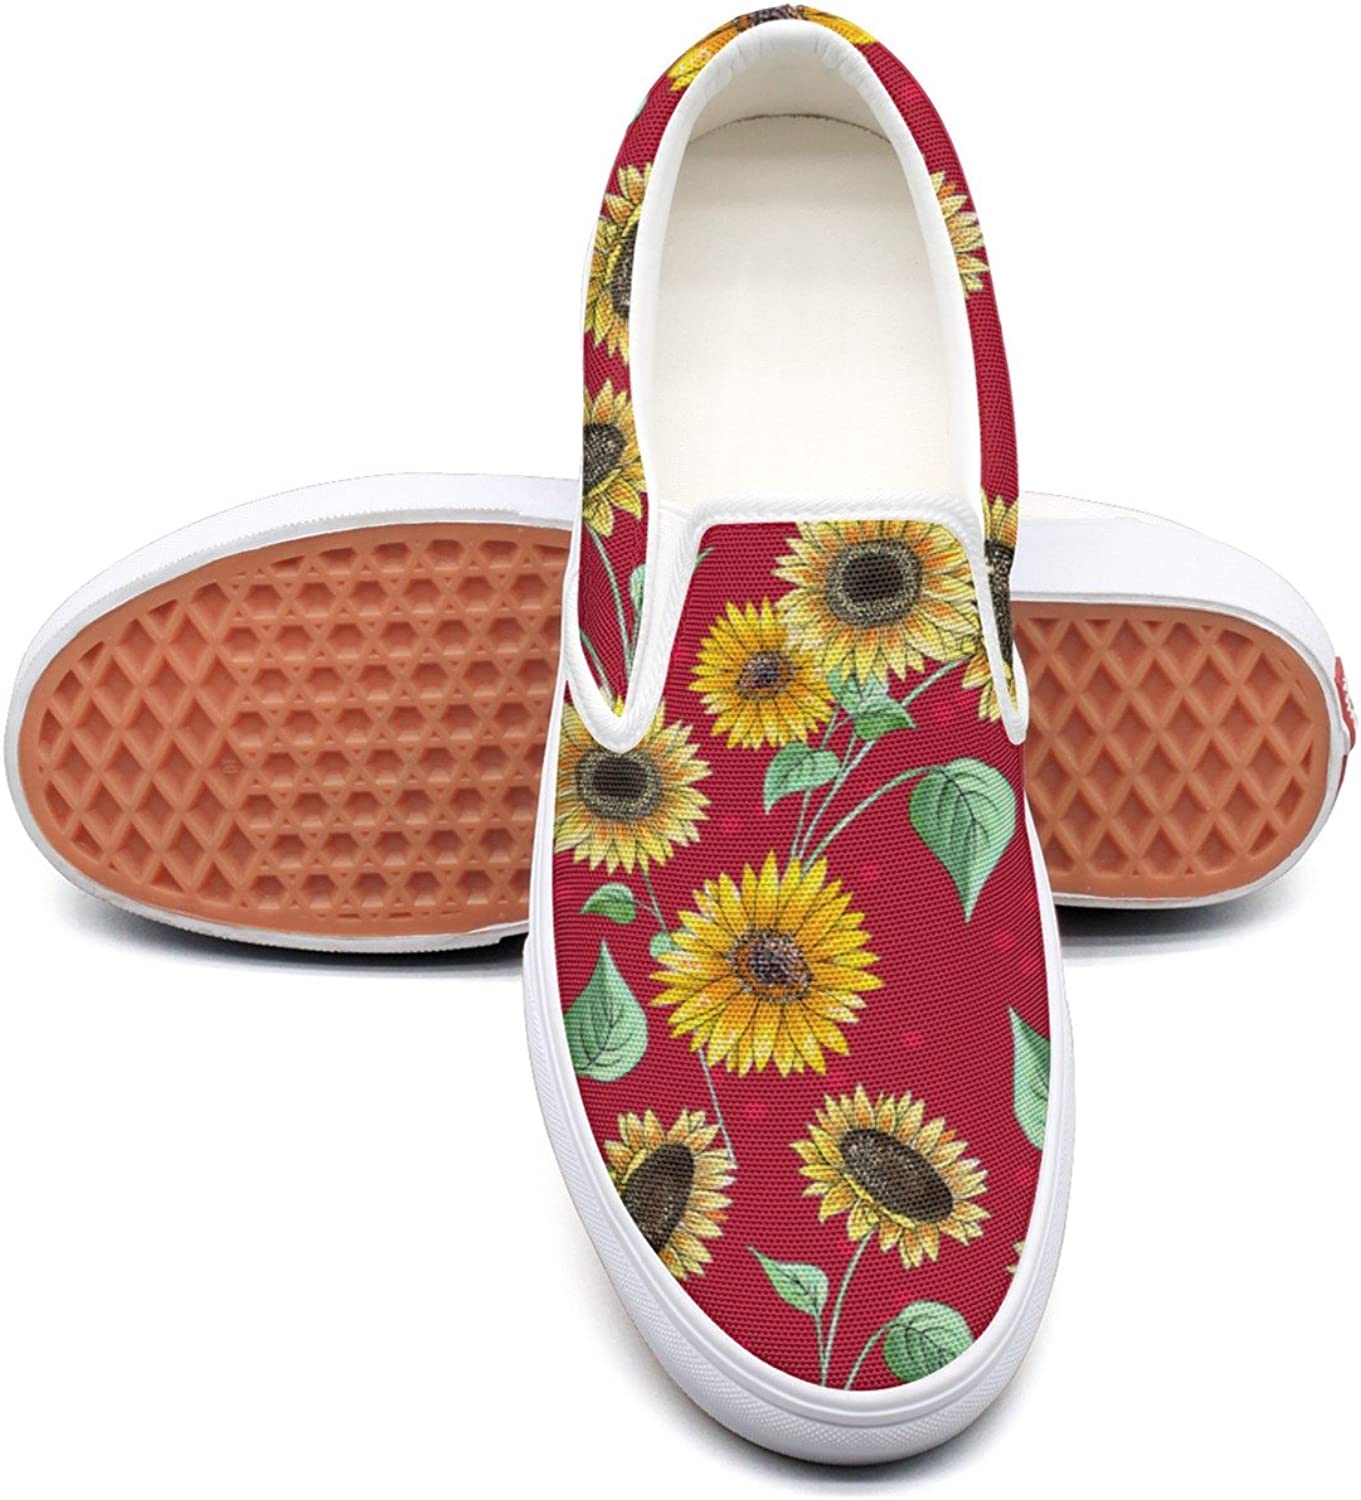 Hjkggd fgfds Casual Sunflower Repeat Red1 Women Canvas shoes